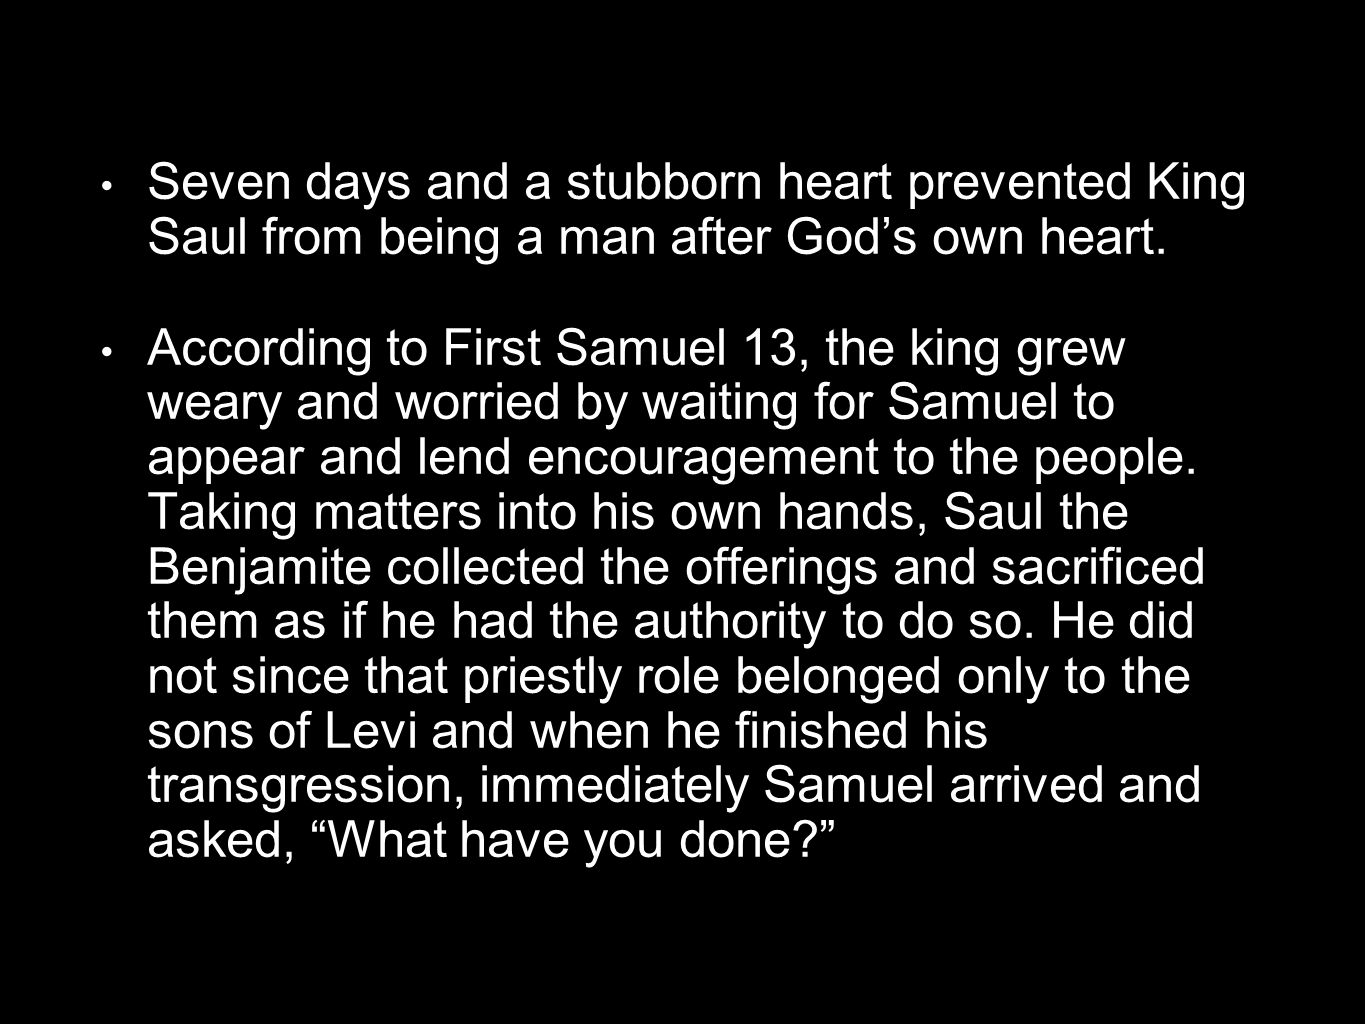 Seven days and a stubborn heart prevented King Saul from being a man after God's own heart.